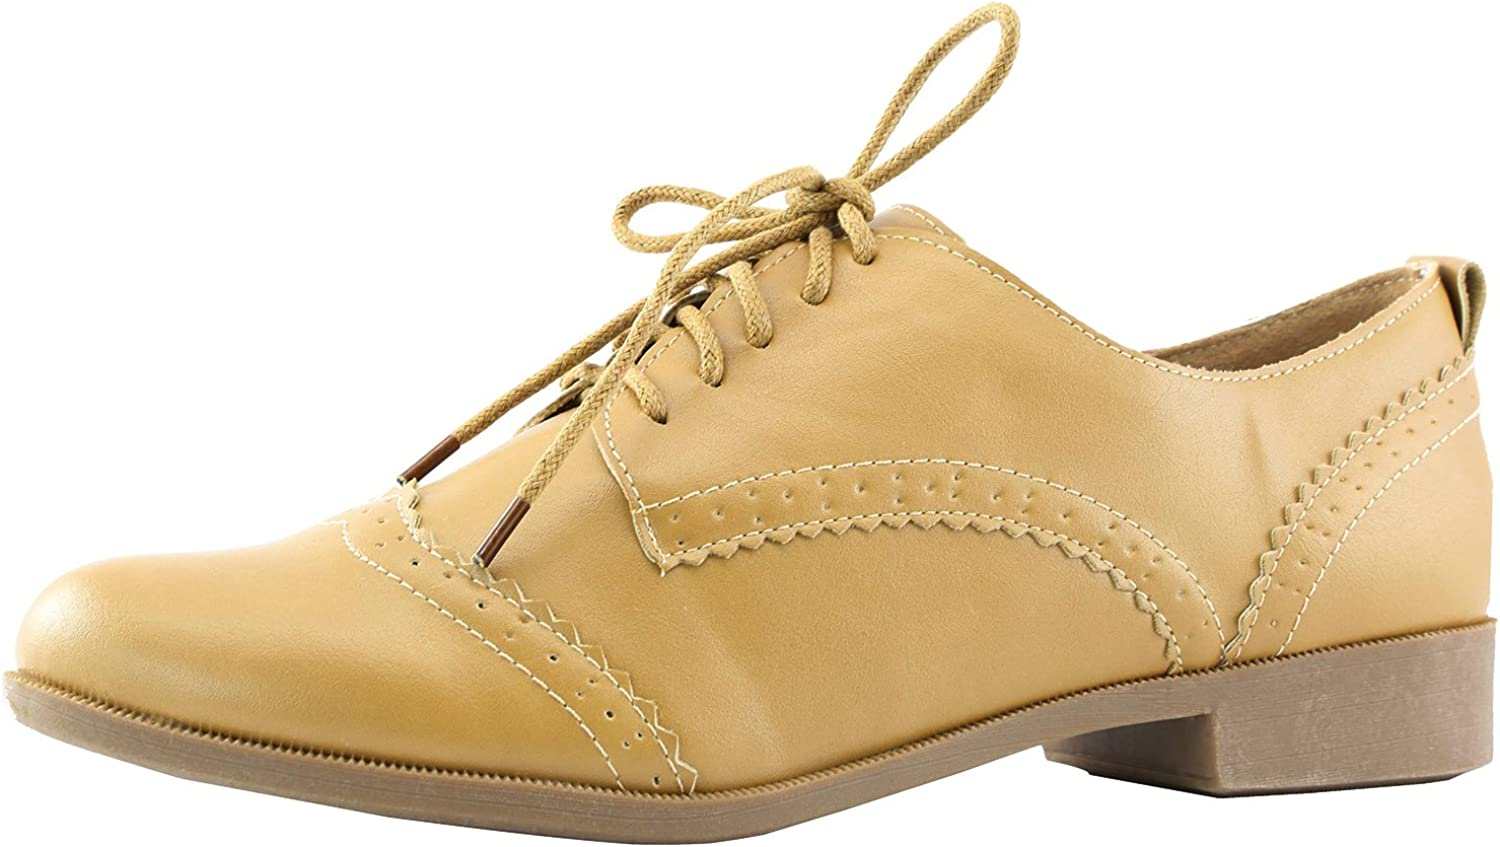 Nature Breeze Women's Campus-01 Five-Eyelets up Wing Tip Perforation Oxfords Fashion Dress shoes